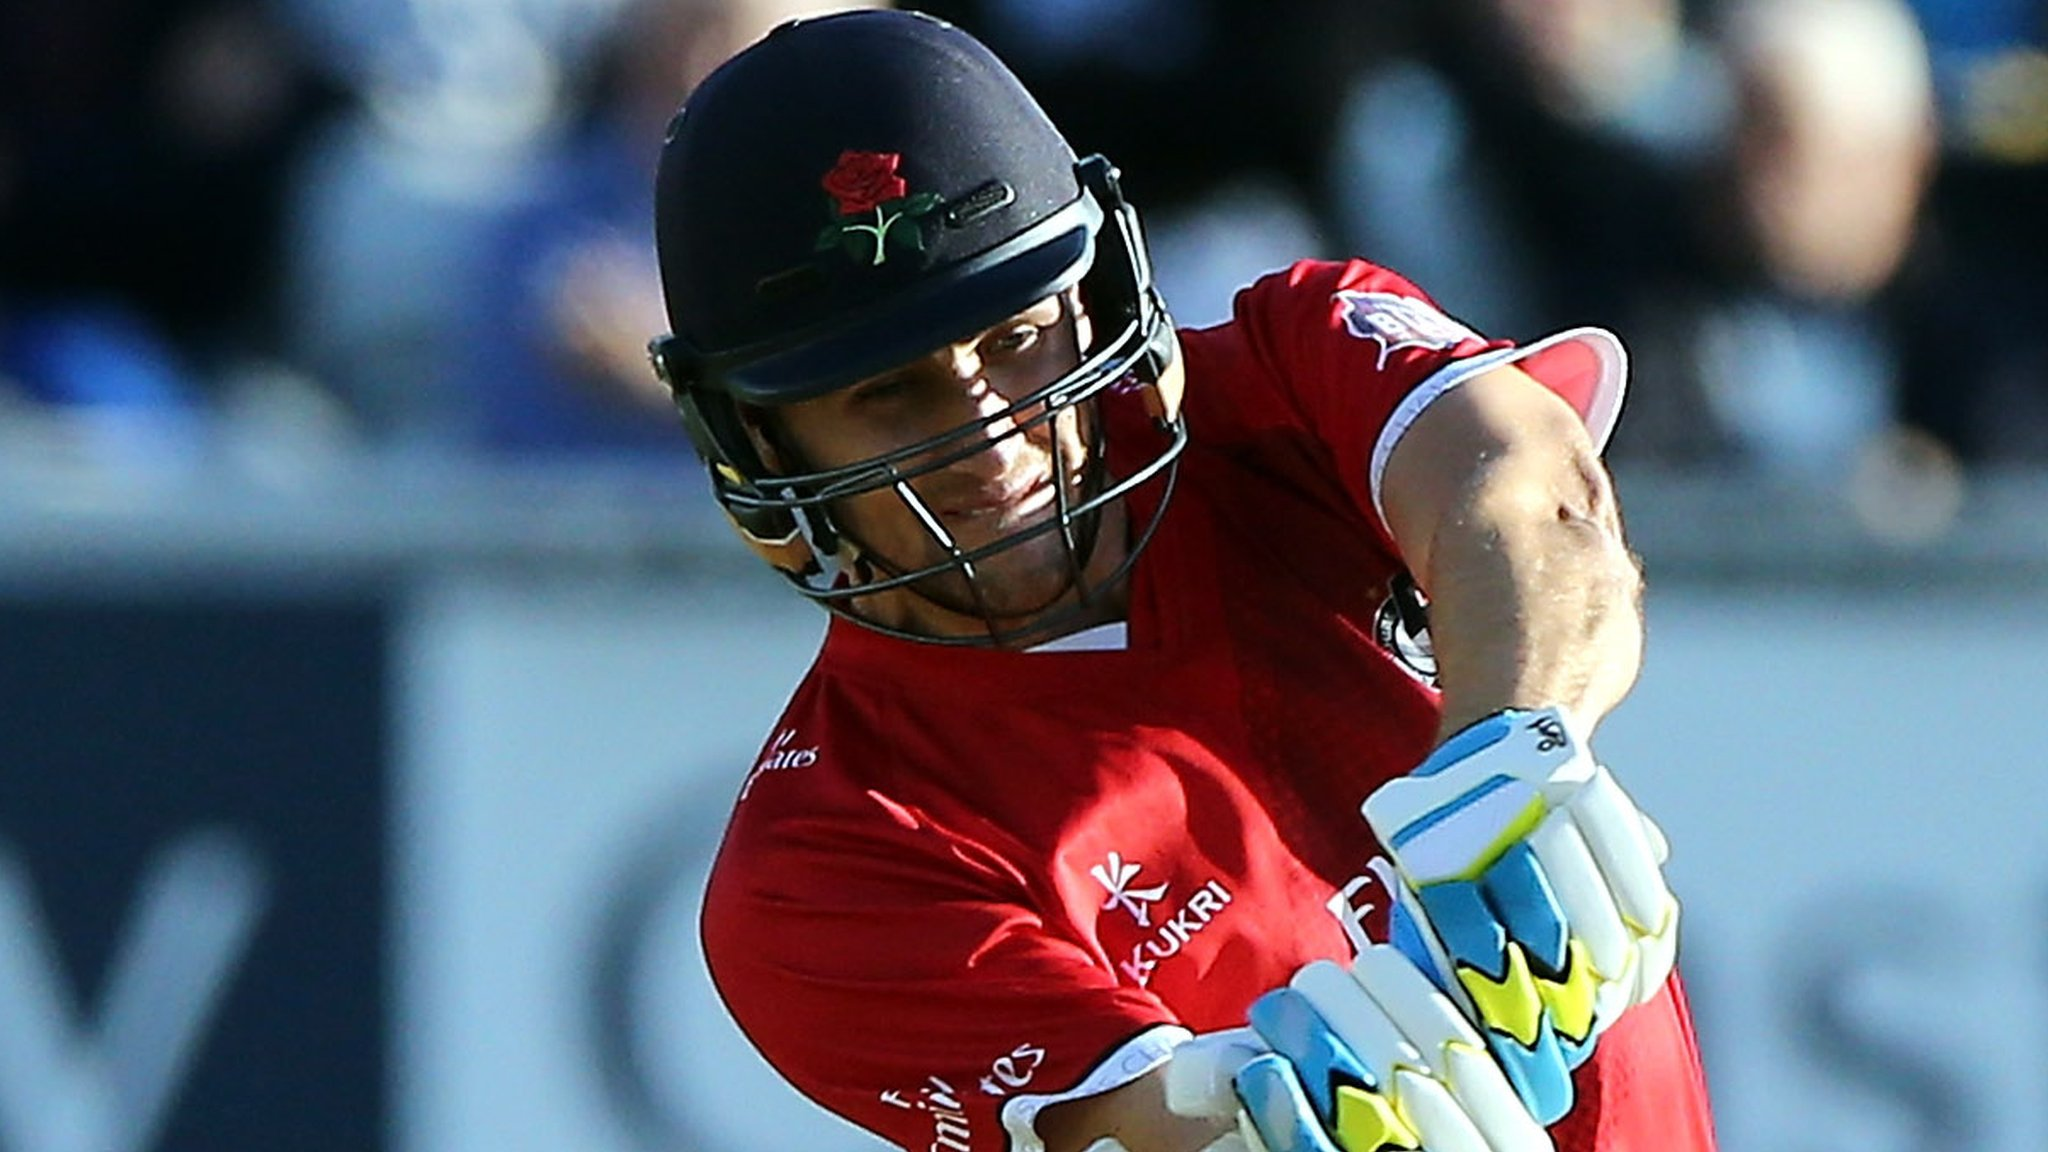 One-Day Cup: Liam Livingstone makes 98 as Lancashire beat Derbyshire